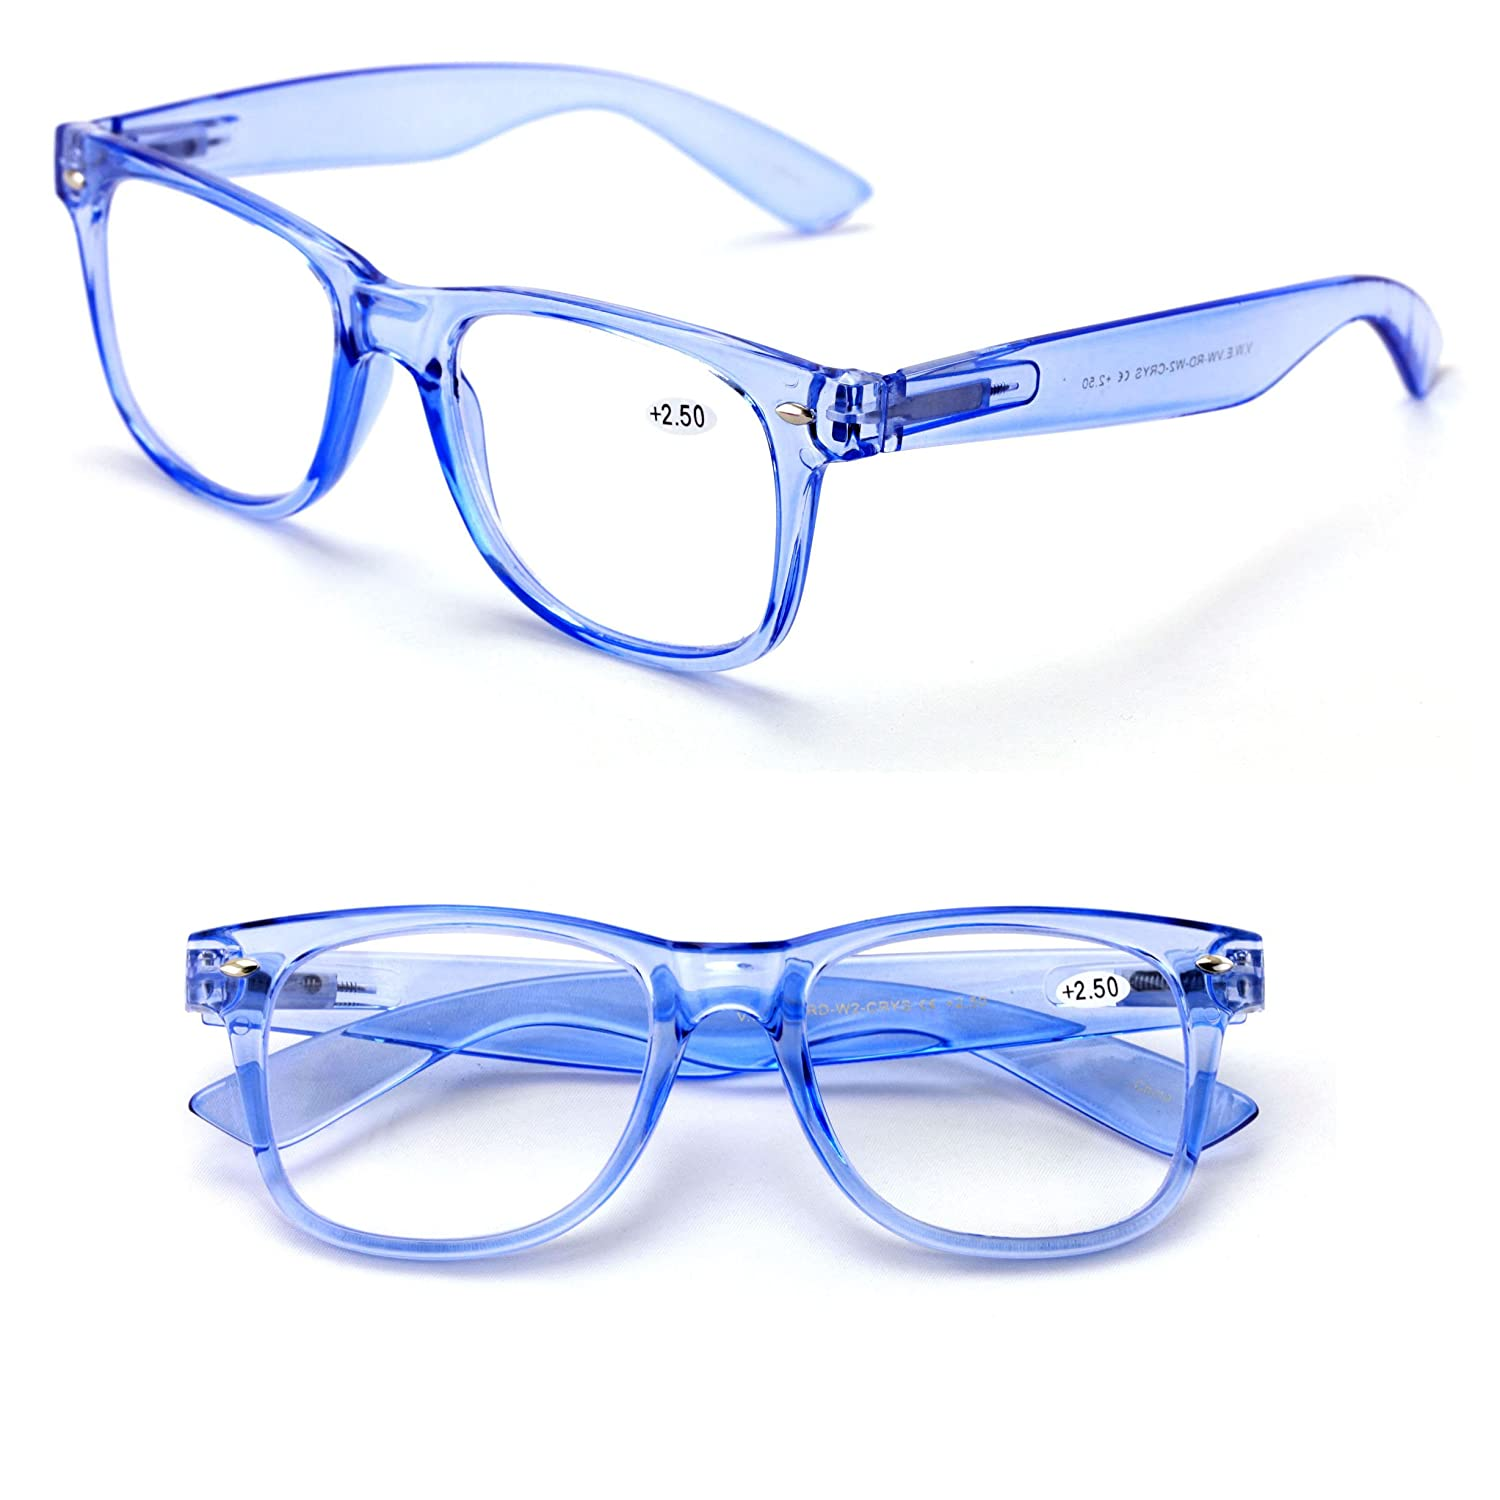 c5b50b303ae Amazon.com  Transparent Neon Color Deluxe Reading Glasses - Comfortable  Stylish Simple Readers Rx Magnification (Blue